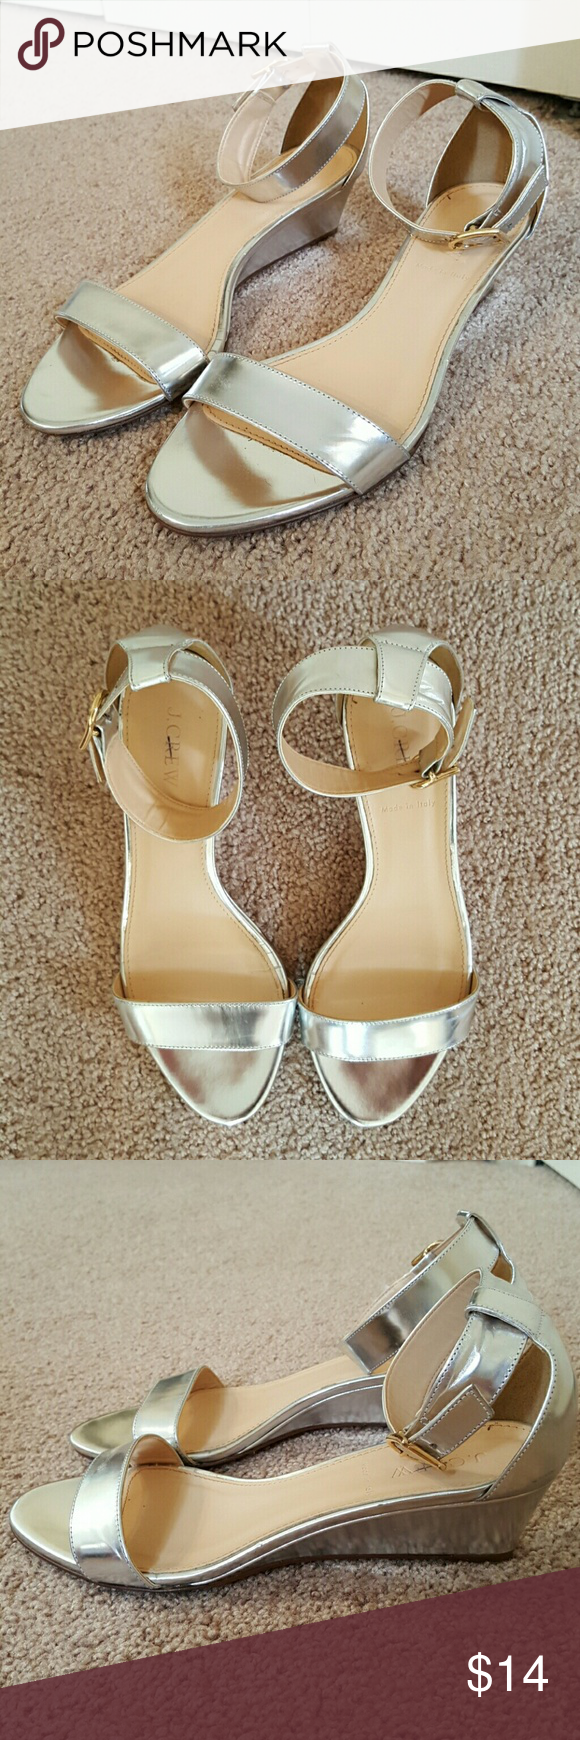 J. Crew Strappy Silver Low Wedge Sandals 8.5M Metallic leather low wedge sandals from J. Crew. Size 8.5M. 1.5